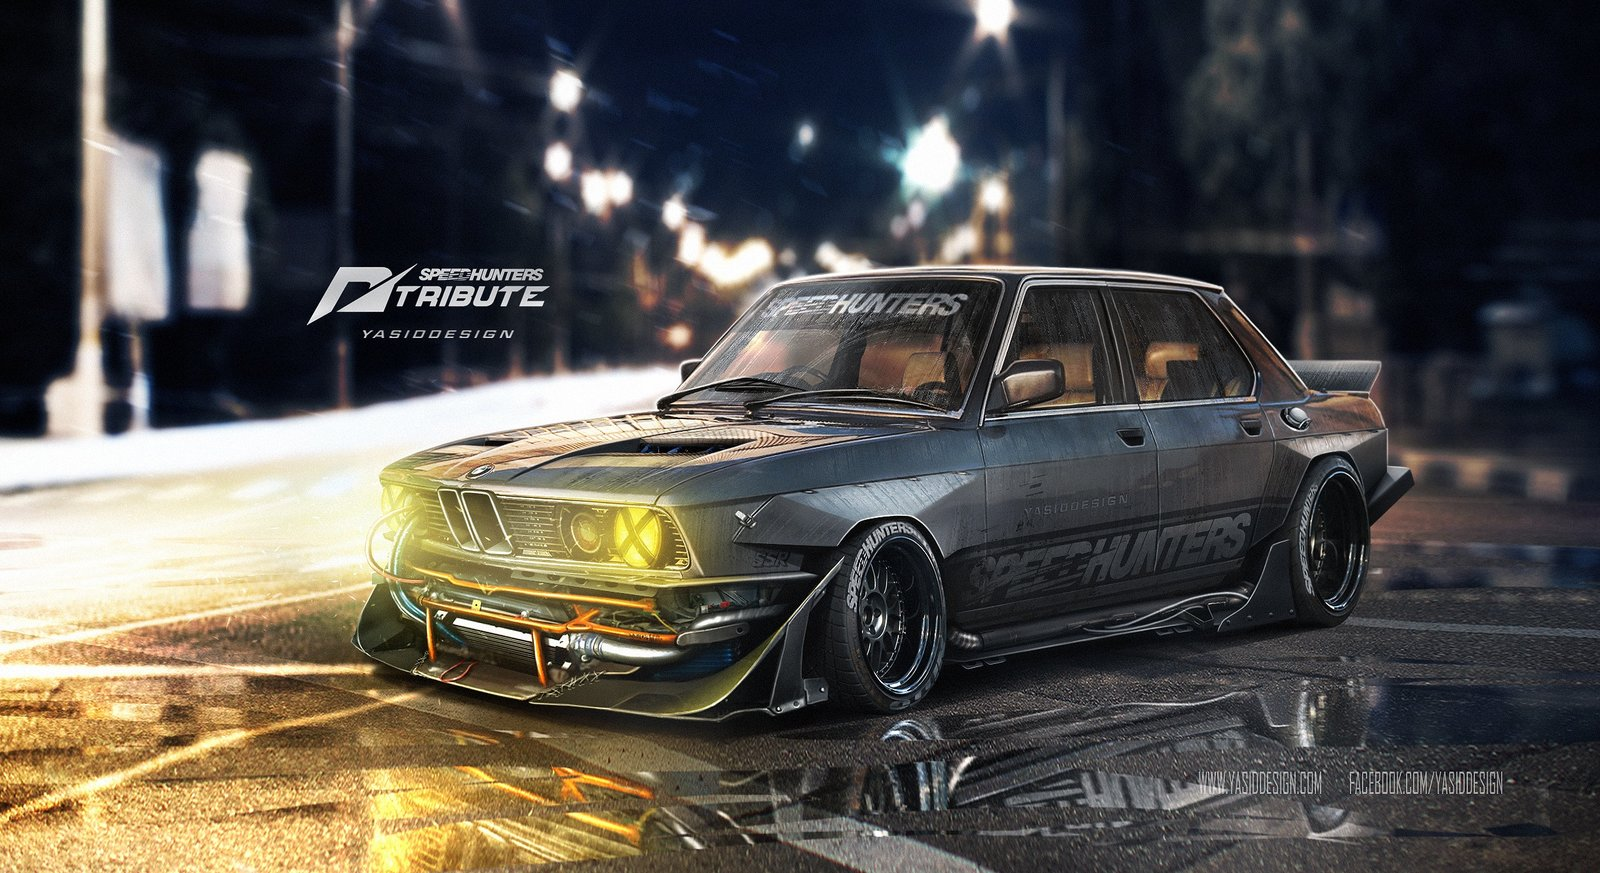 Speedhunters BMW 535i - Need for speed Tribute